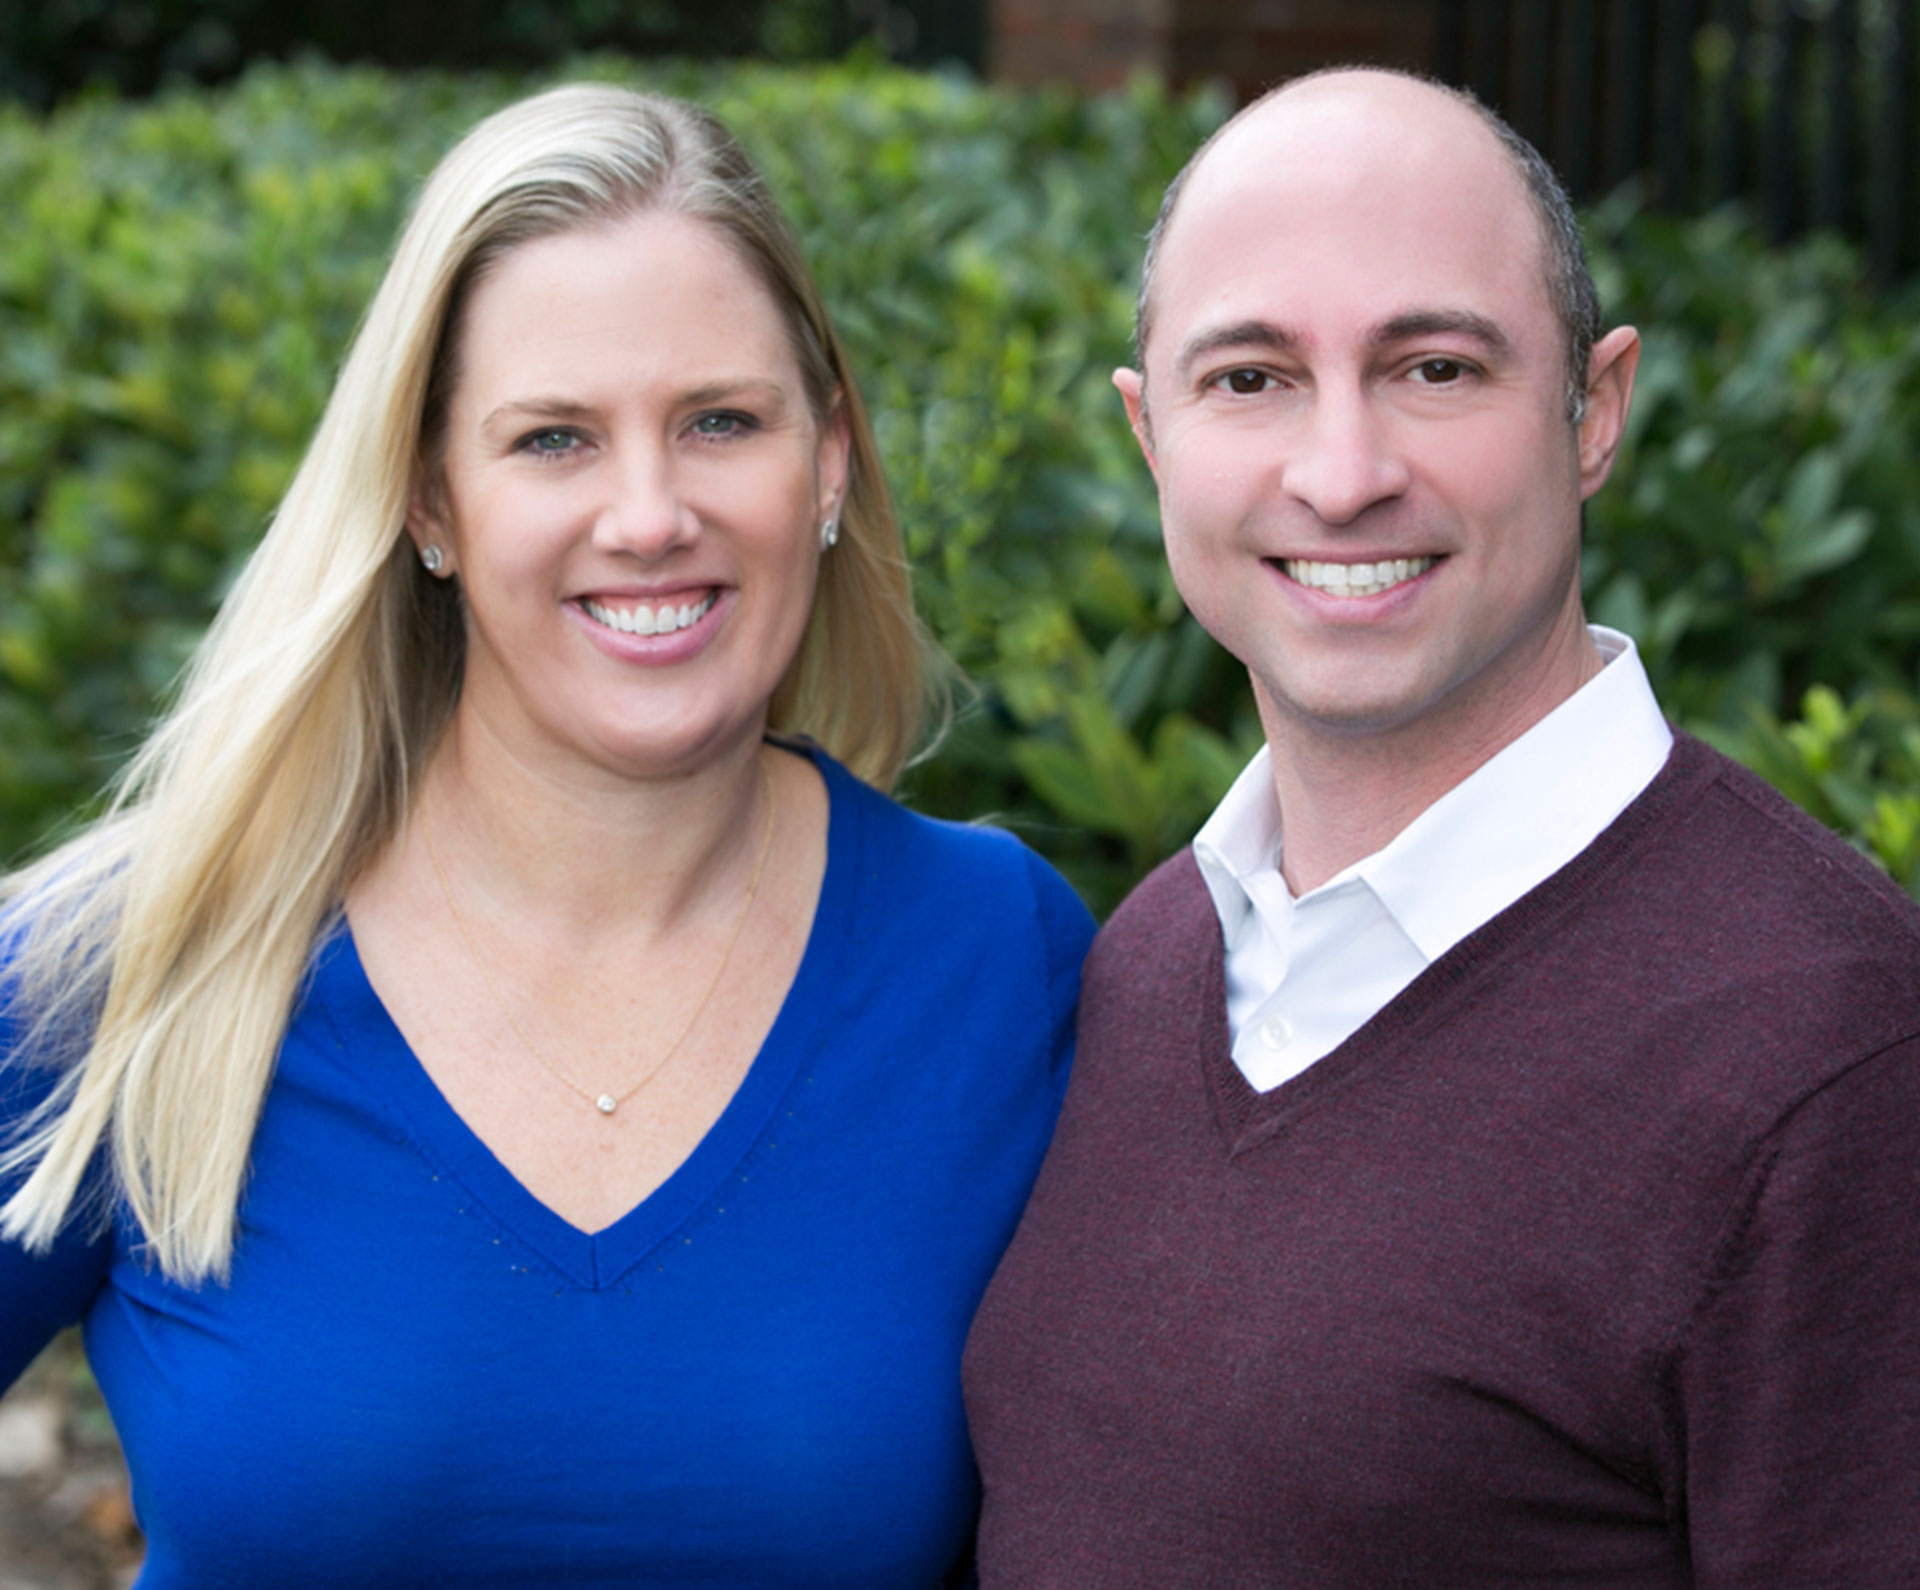 Dr. Lindsey Knowles, one of the southeast's most accomplished Sports Physical Therapists who holds a specialty certification in Sports Physical Therapy